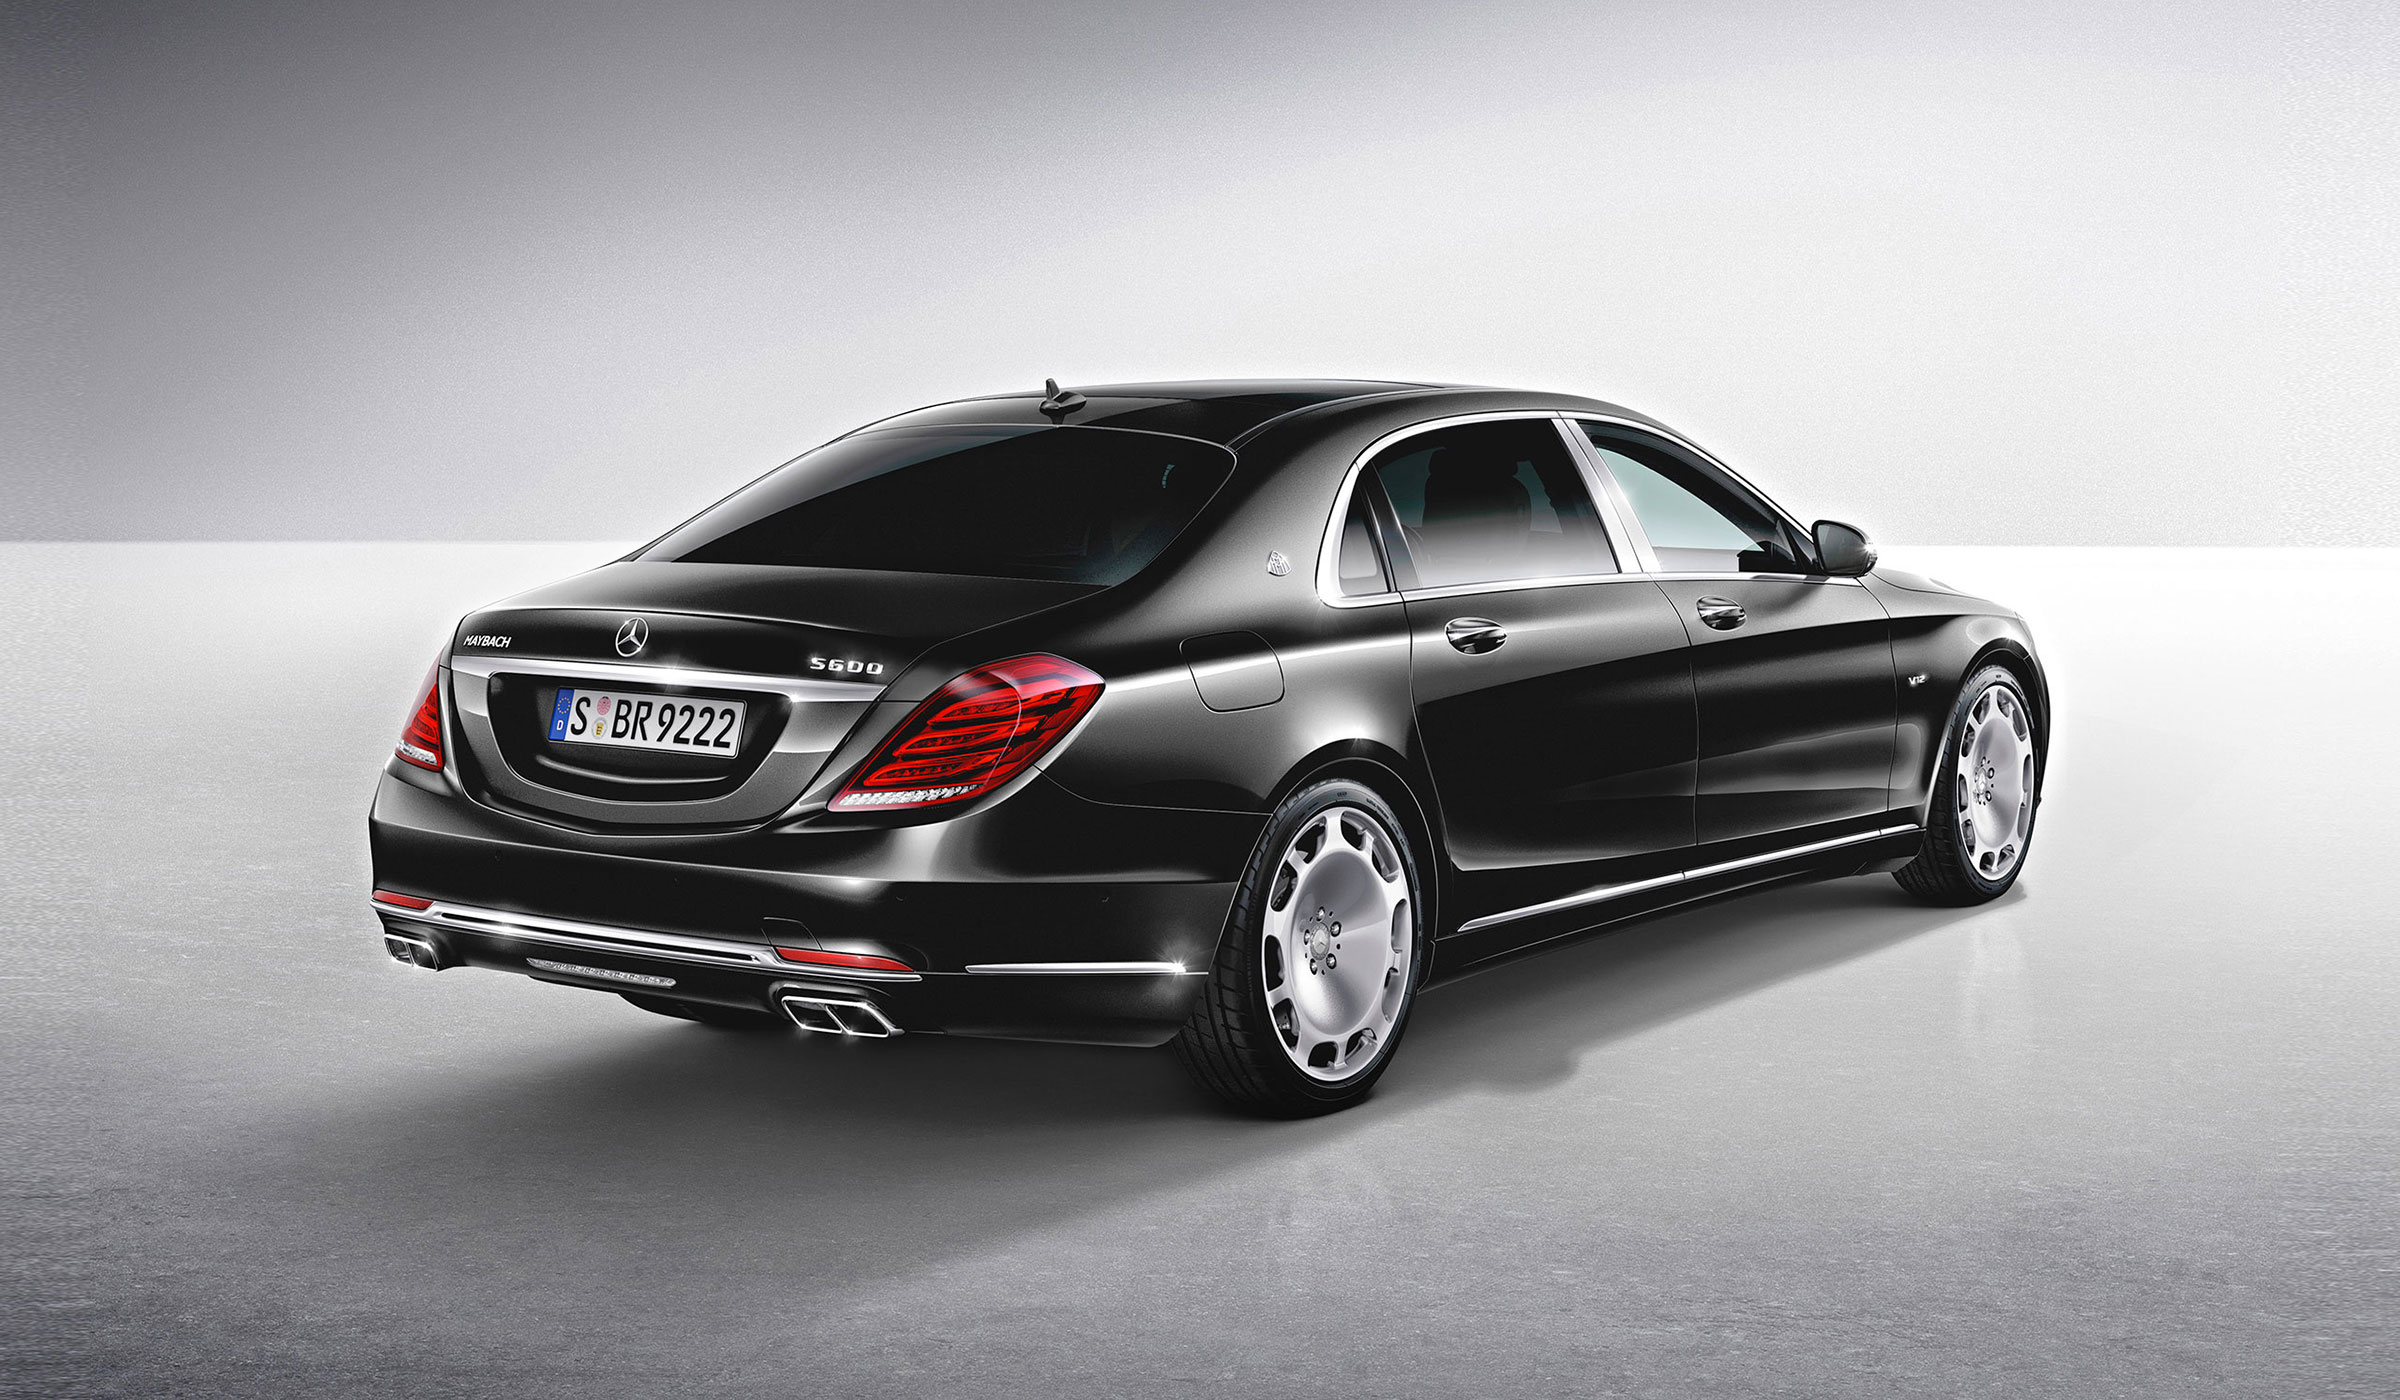 2015-S-CLASS-S600-MAYBACH-FUTURE-GALLERY-001-WR-D